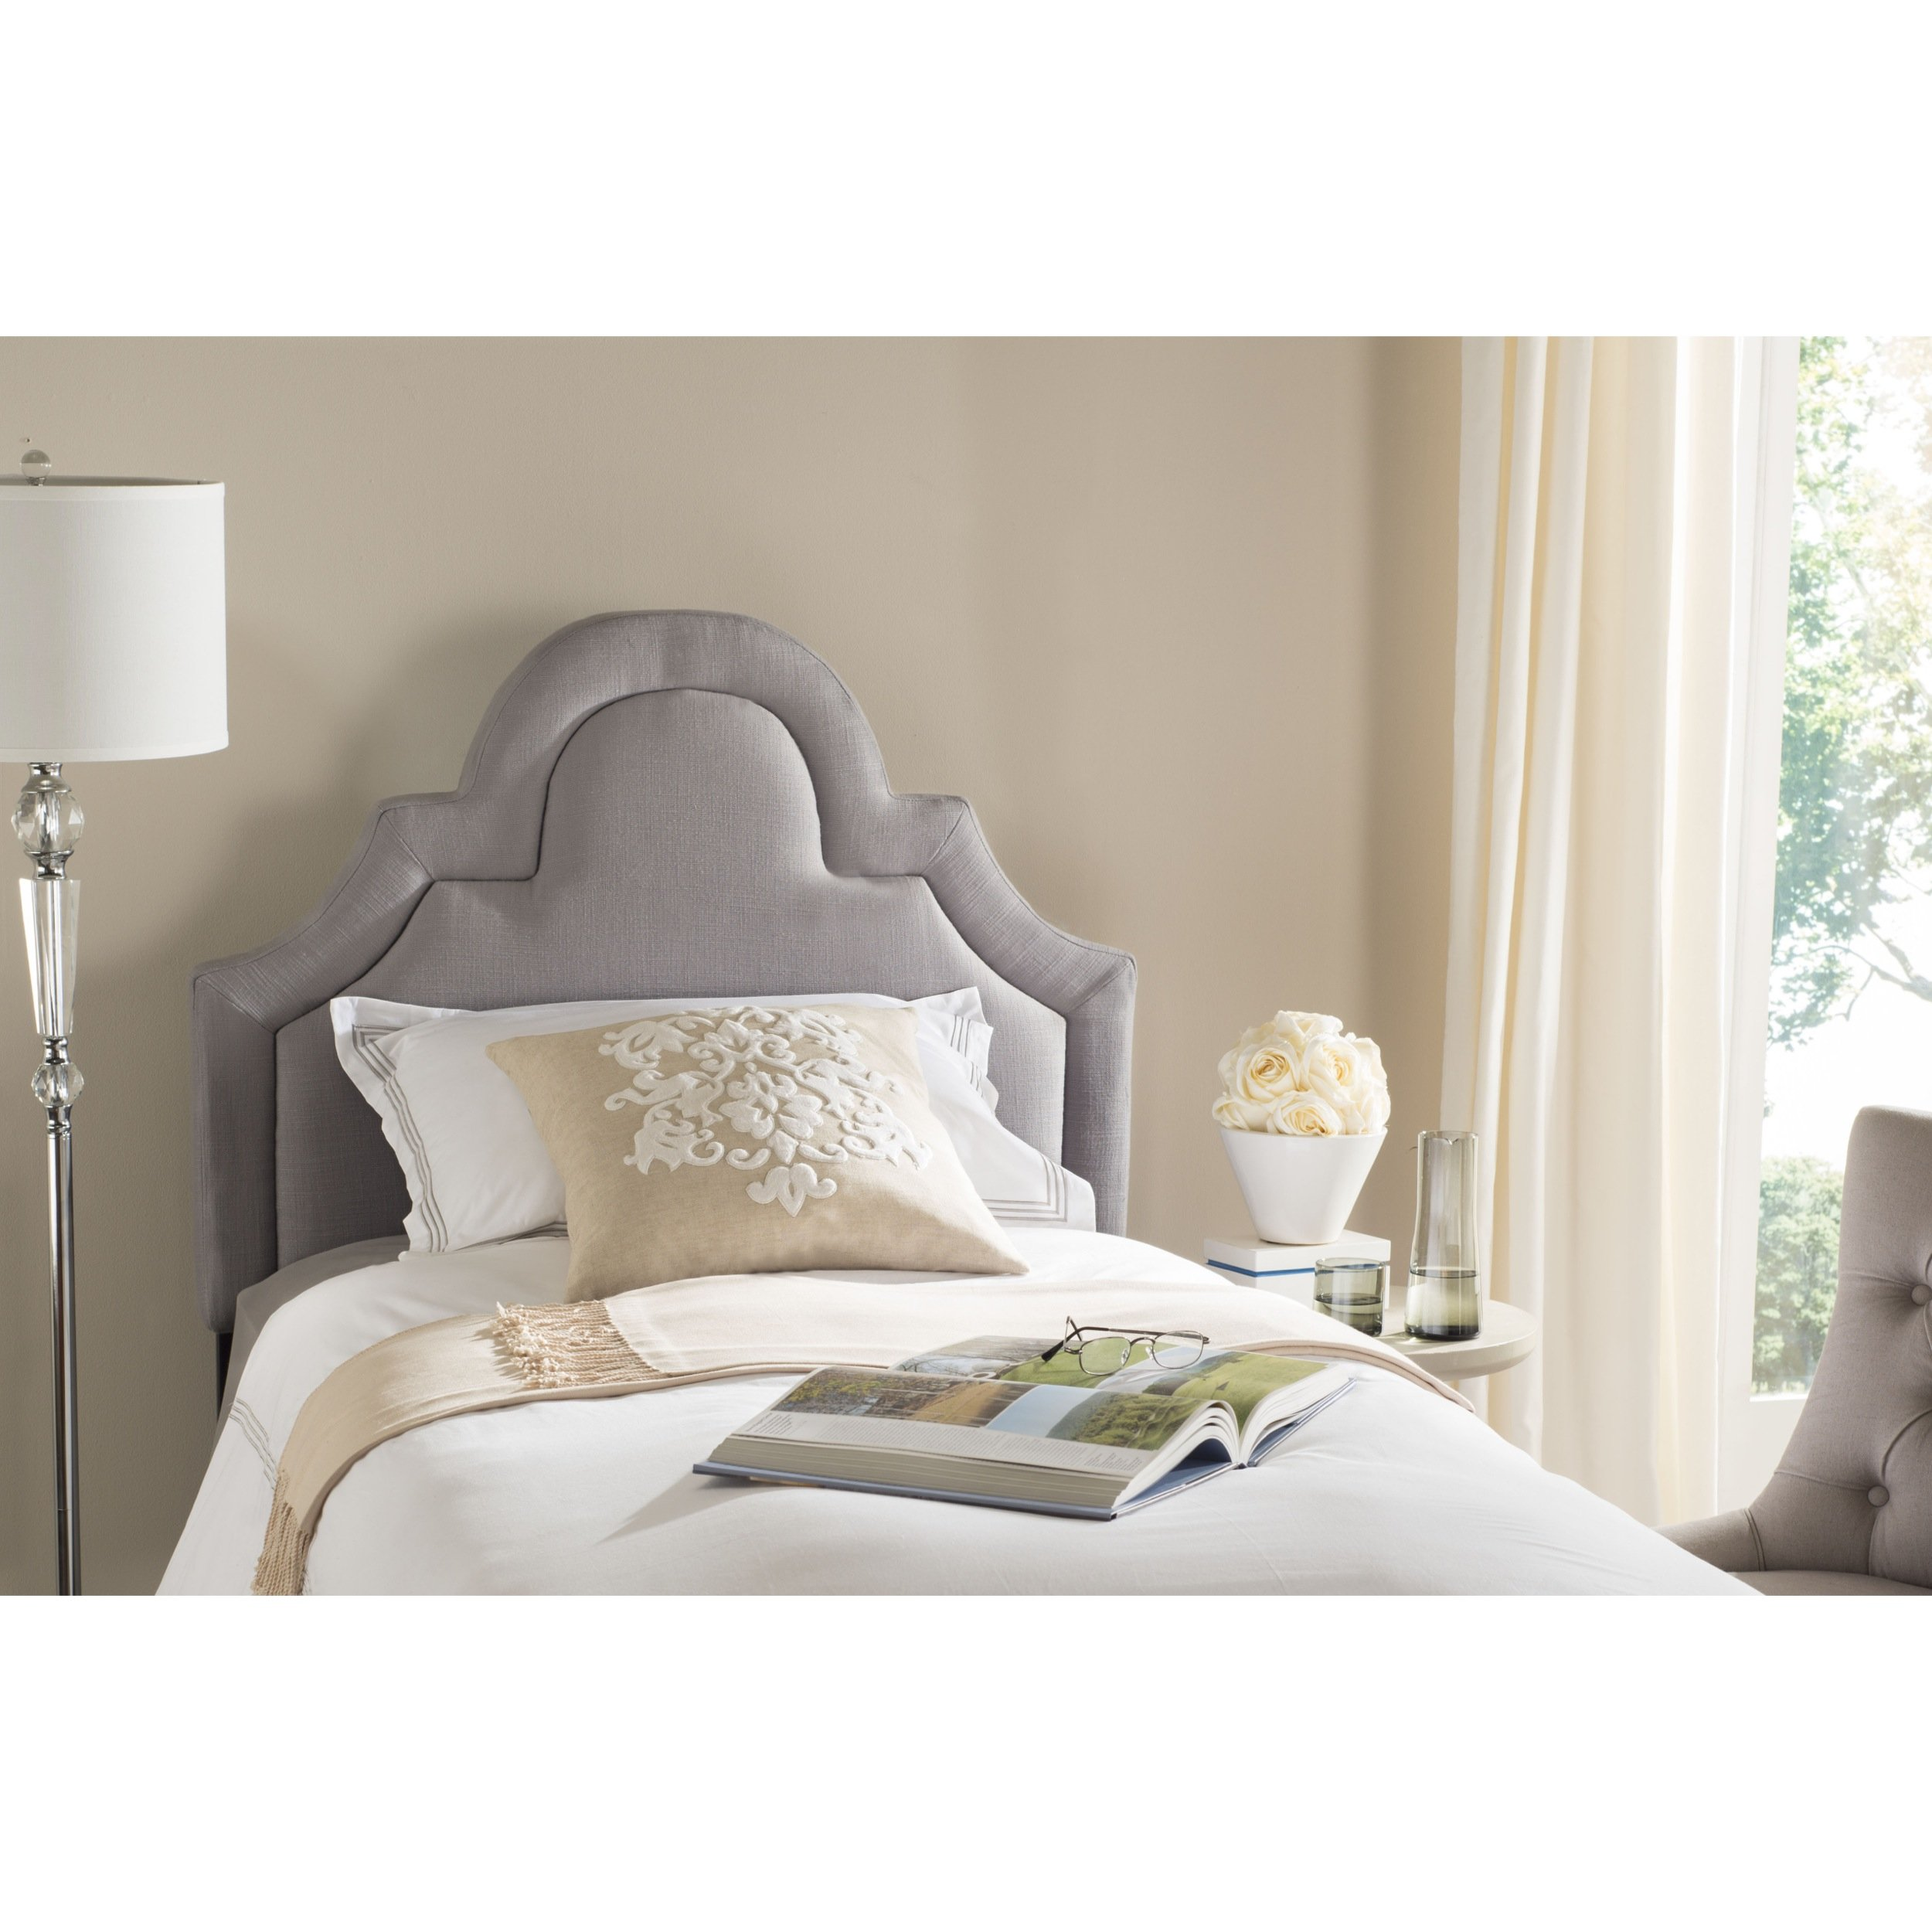 Safavieh Kerstin Arctic Grey Cotton Blend Upholstered Arched Headboard (Twin) by Safavieh (Image #1)